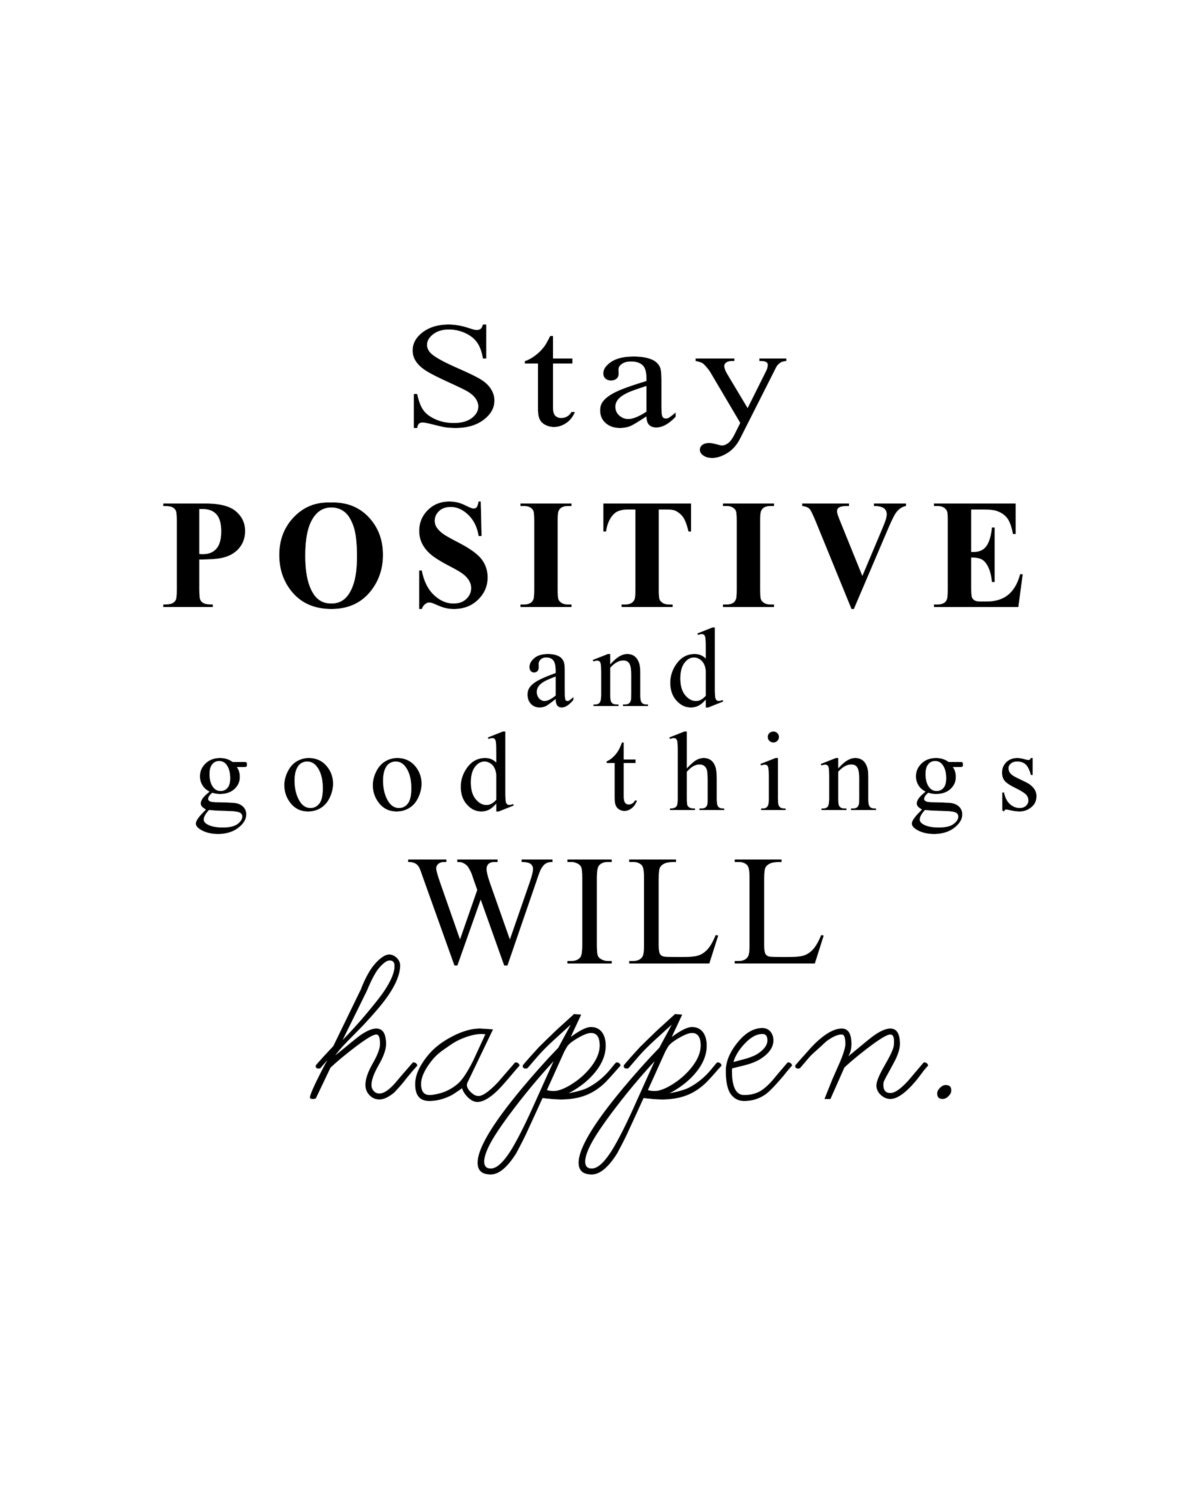 Printable Quote Life Inspirational Stay Positive